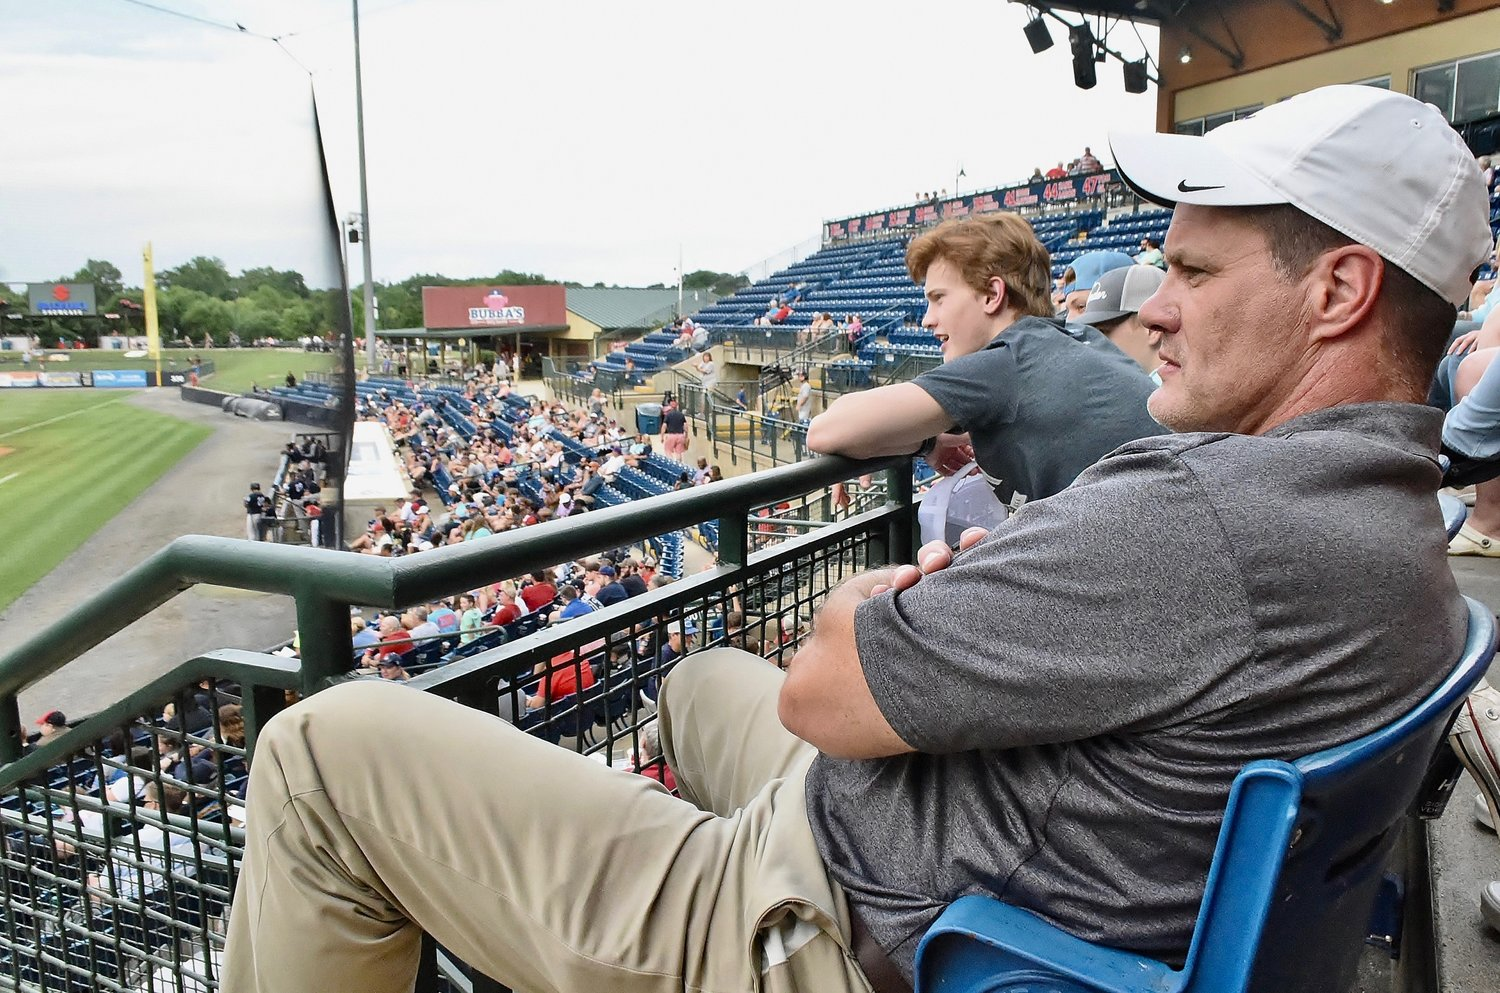 Cartersville High School Assistant Administrator Marc Collier and his family were on hand at State Mutual Stadium in Rome Tuesday night to watch CHS alumnus Anthony Seigler play for the Charleston RiverDogs against the Rome Braves.